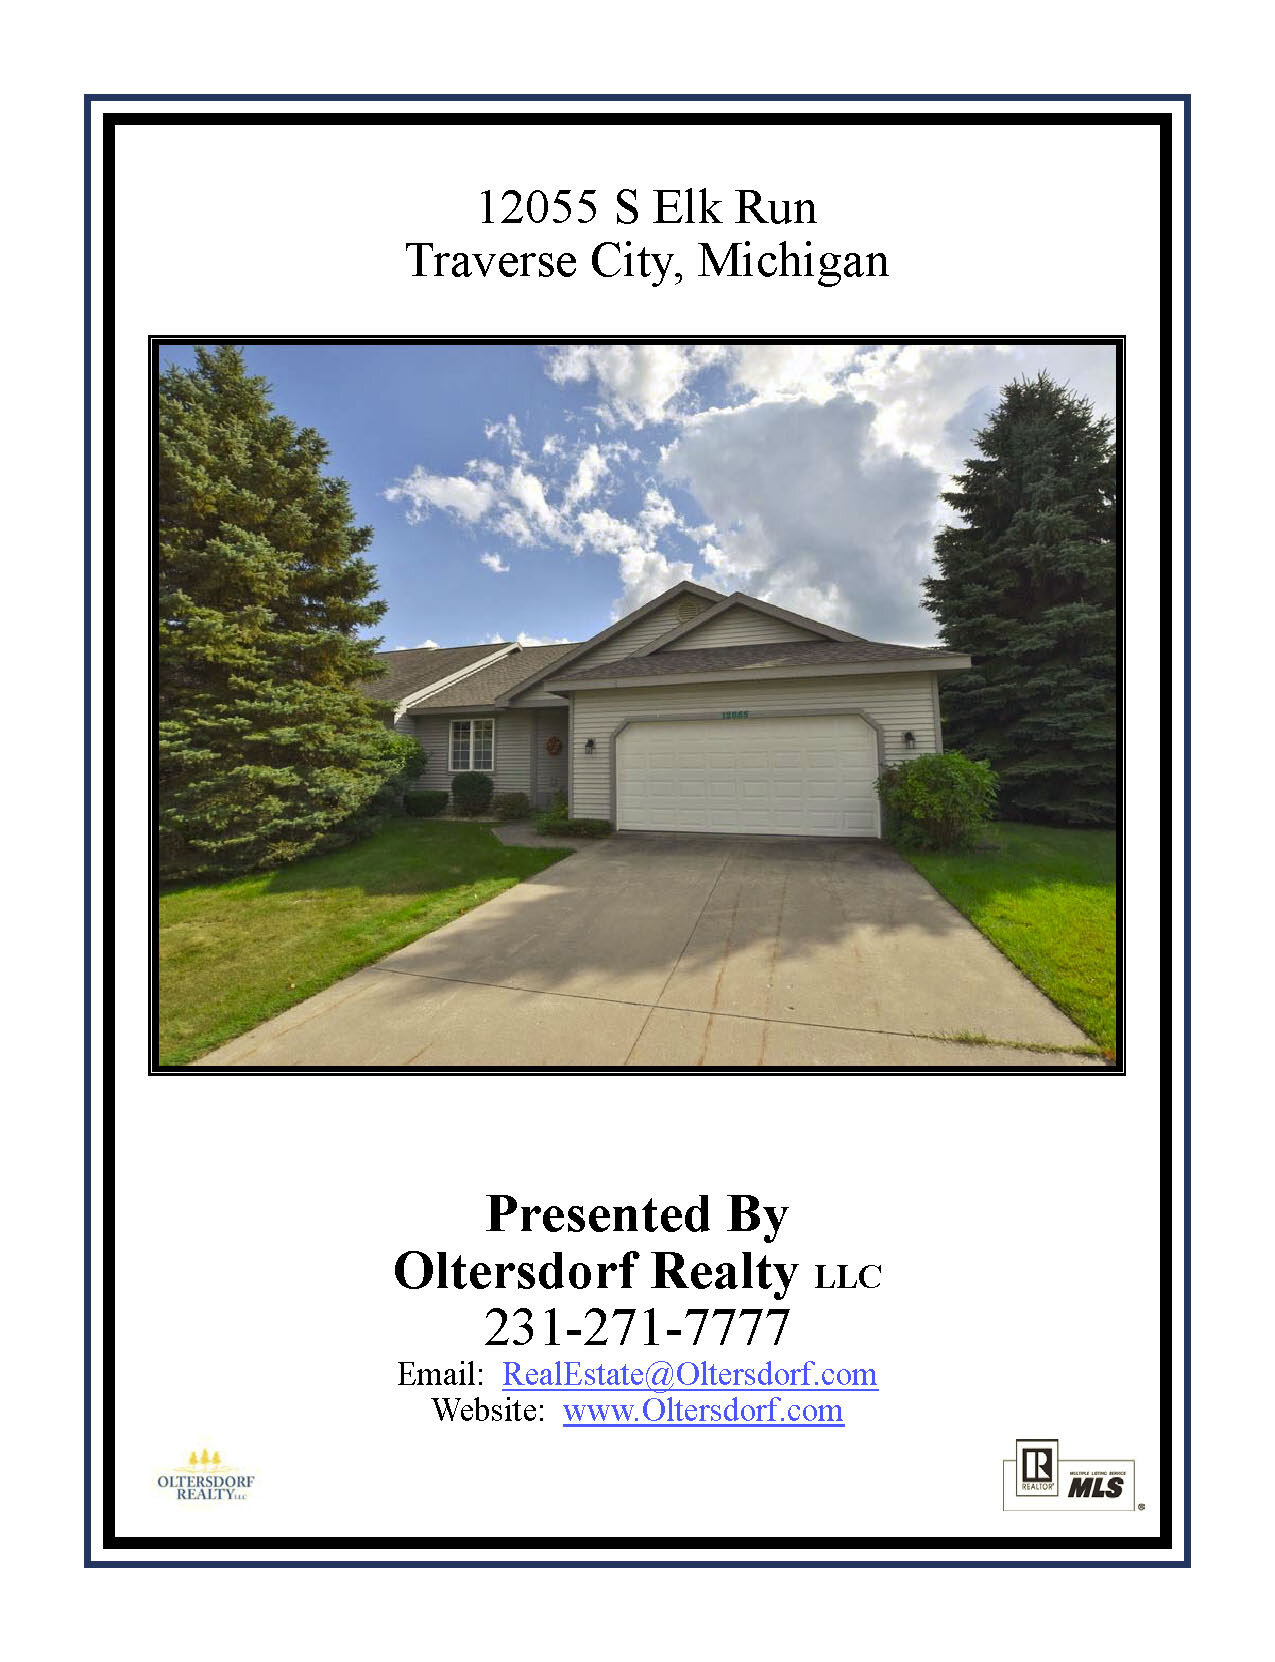 12055 S Elk Run, Traverse City, MI – 2+ Bedroom, 2 Bath Cedar Creek Condominium - Marketing Packet_Page_01.jpg